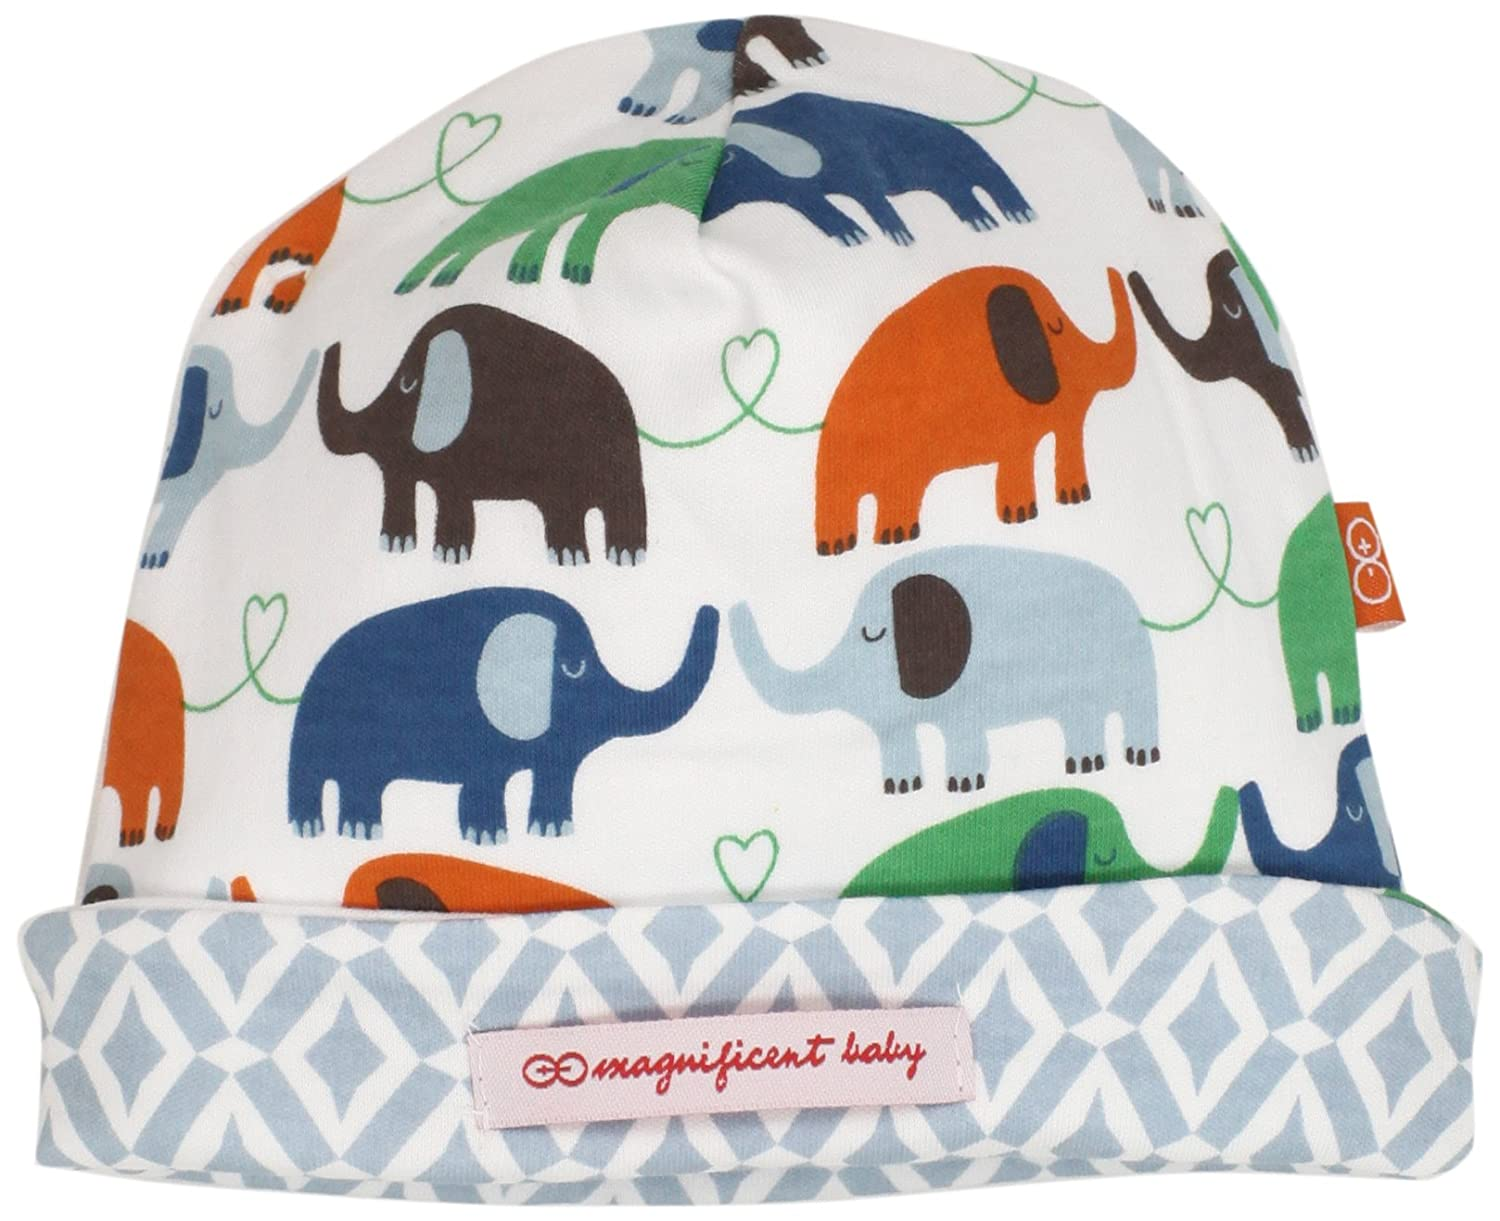 Magnificent Baby Baby-Boys Newborn Reversible Cozy Cap Marrakesh/Elephant One Size 1-Pack 1931B-OS